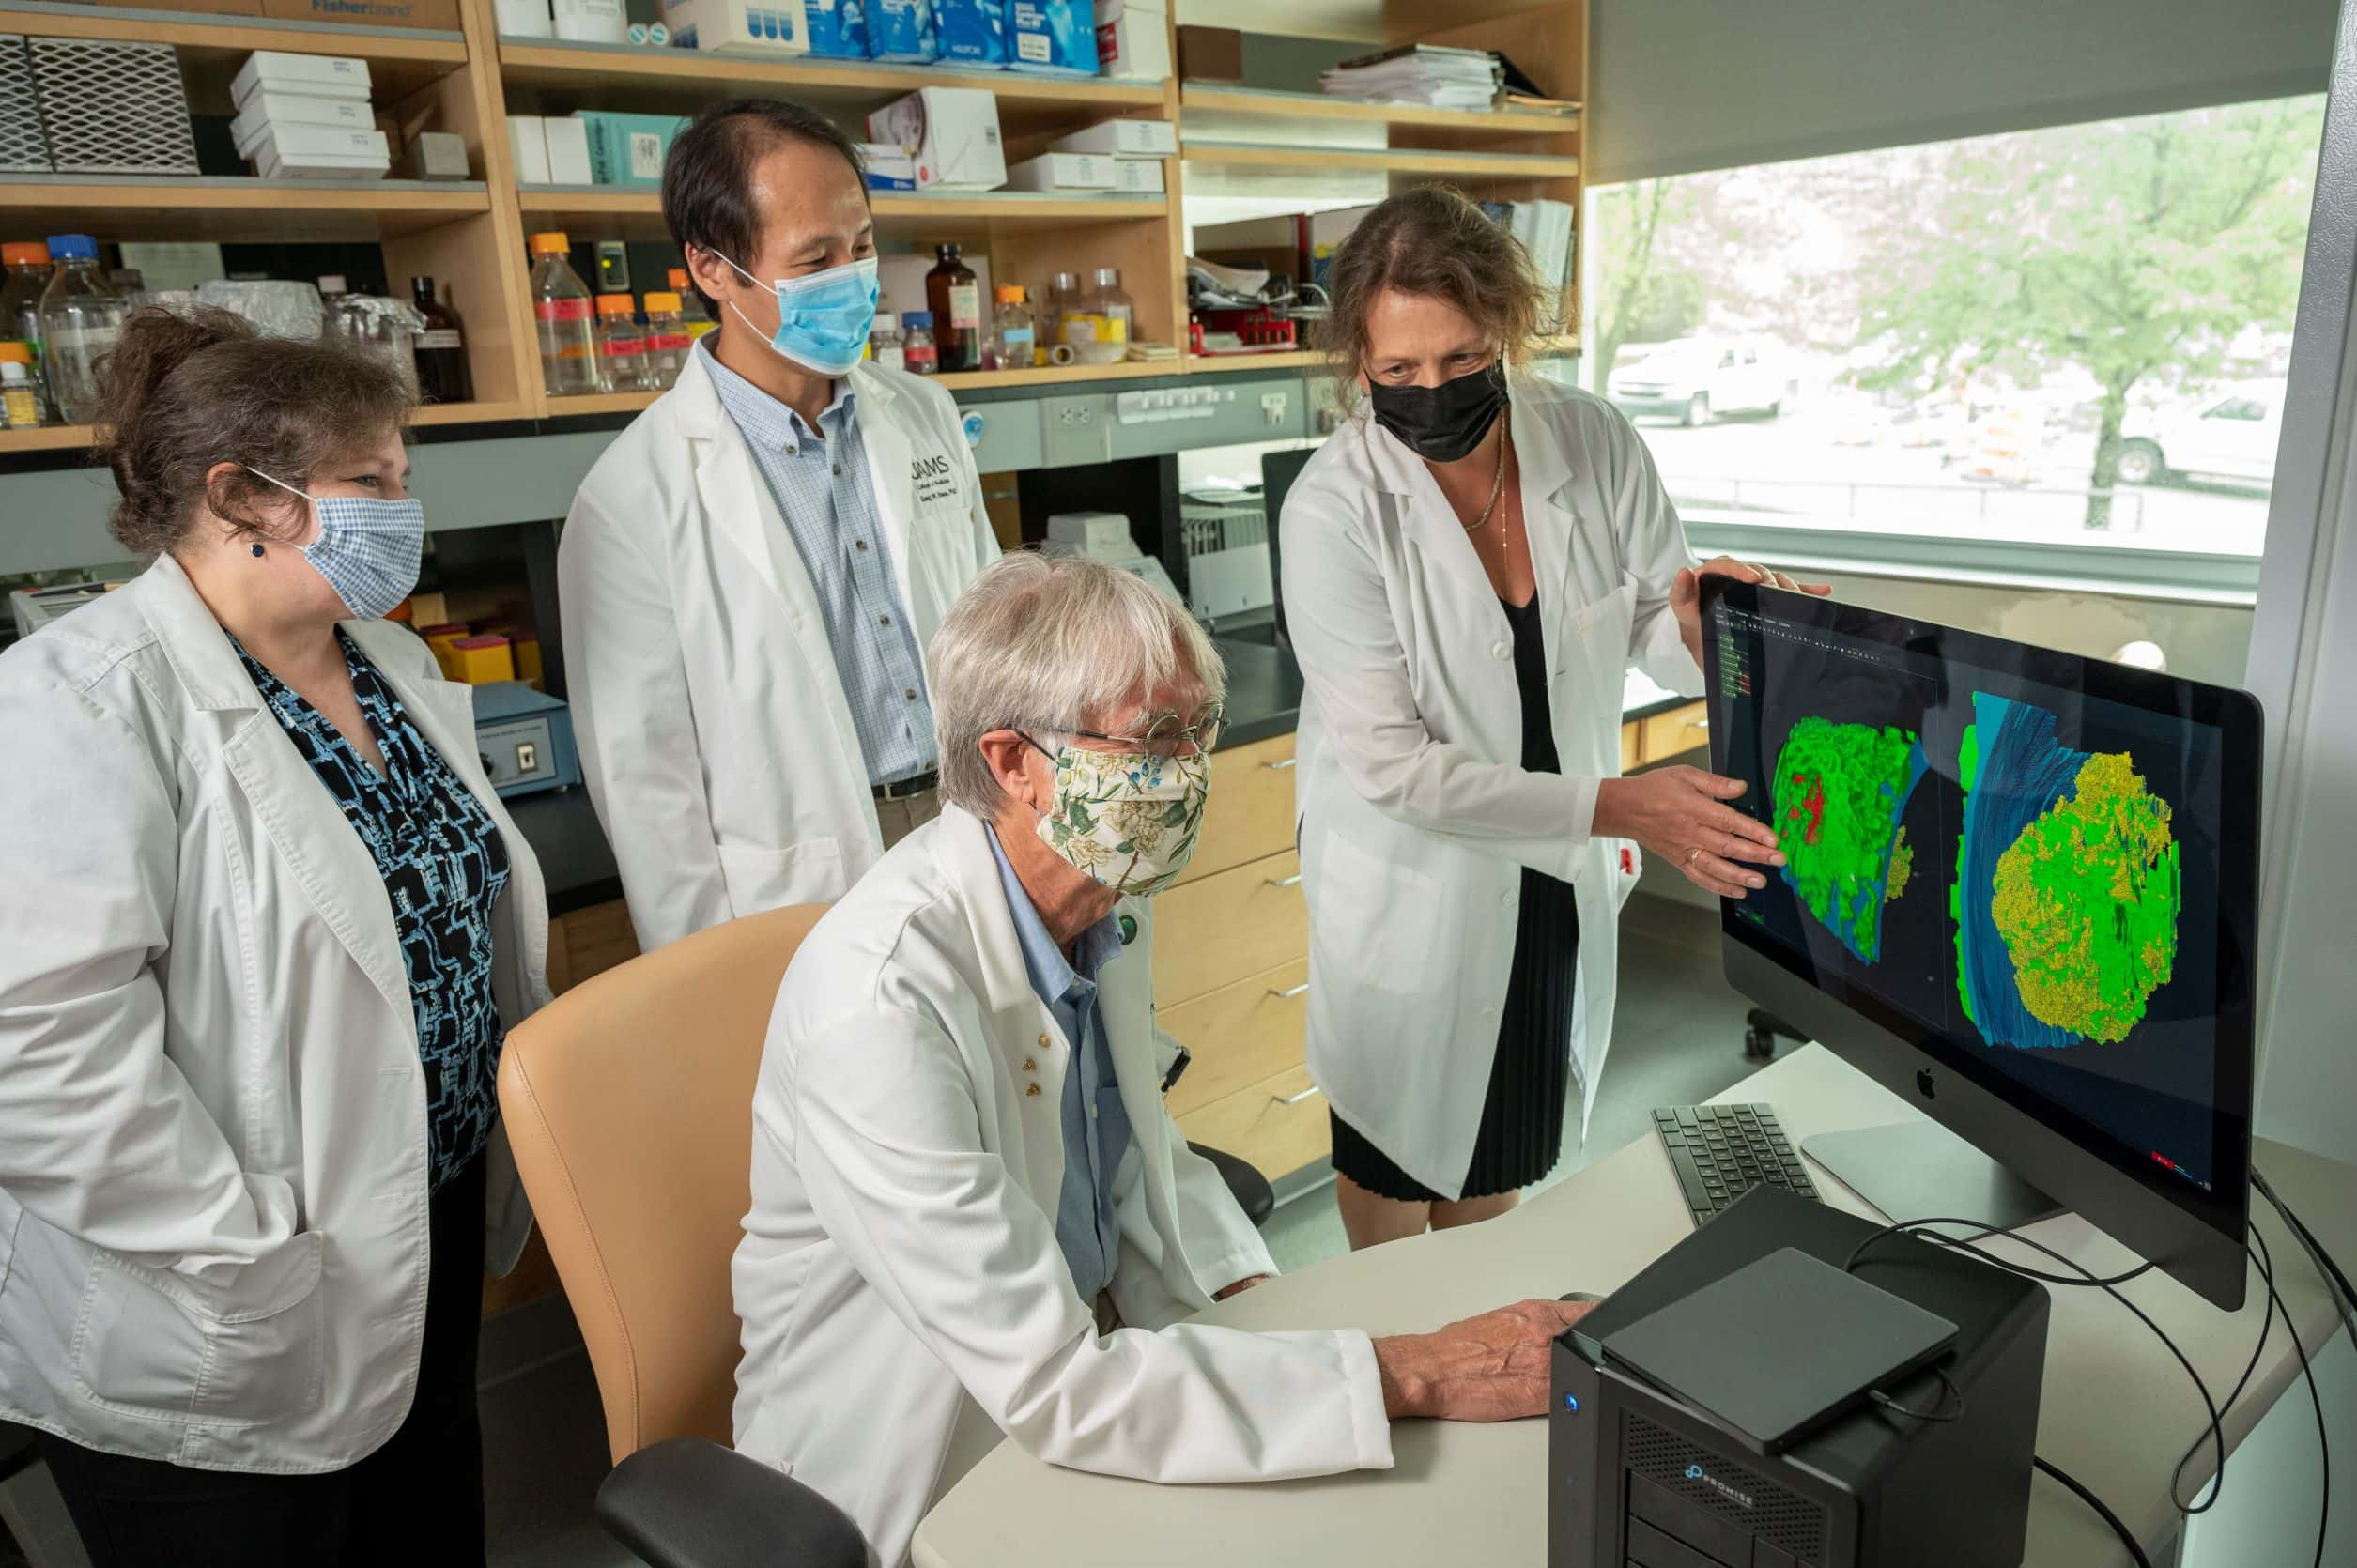 Brian Storrie, Ph.D., with members of the research team (standing, l-r), Kelly Ball, M.S., Sung Rhee, Ph.D., and Irina Pokrovskaya, M.S., displaying images of blood platelets that have combined to seal a puncture wound.